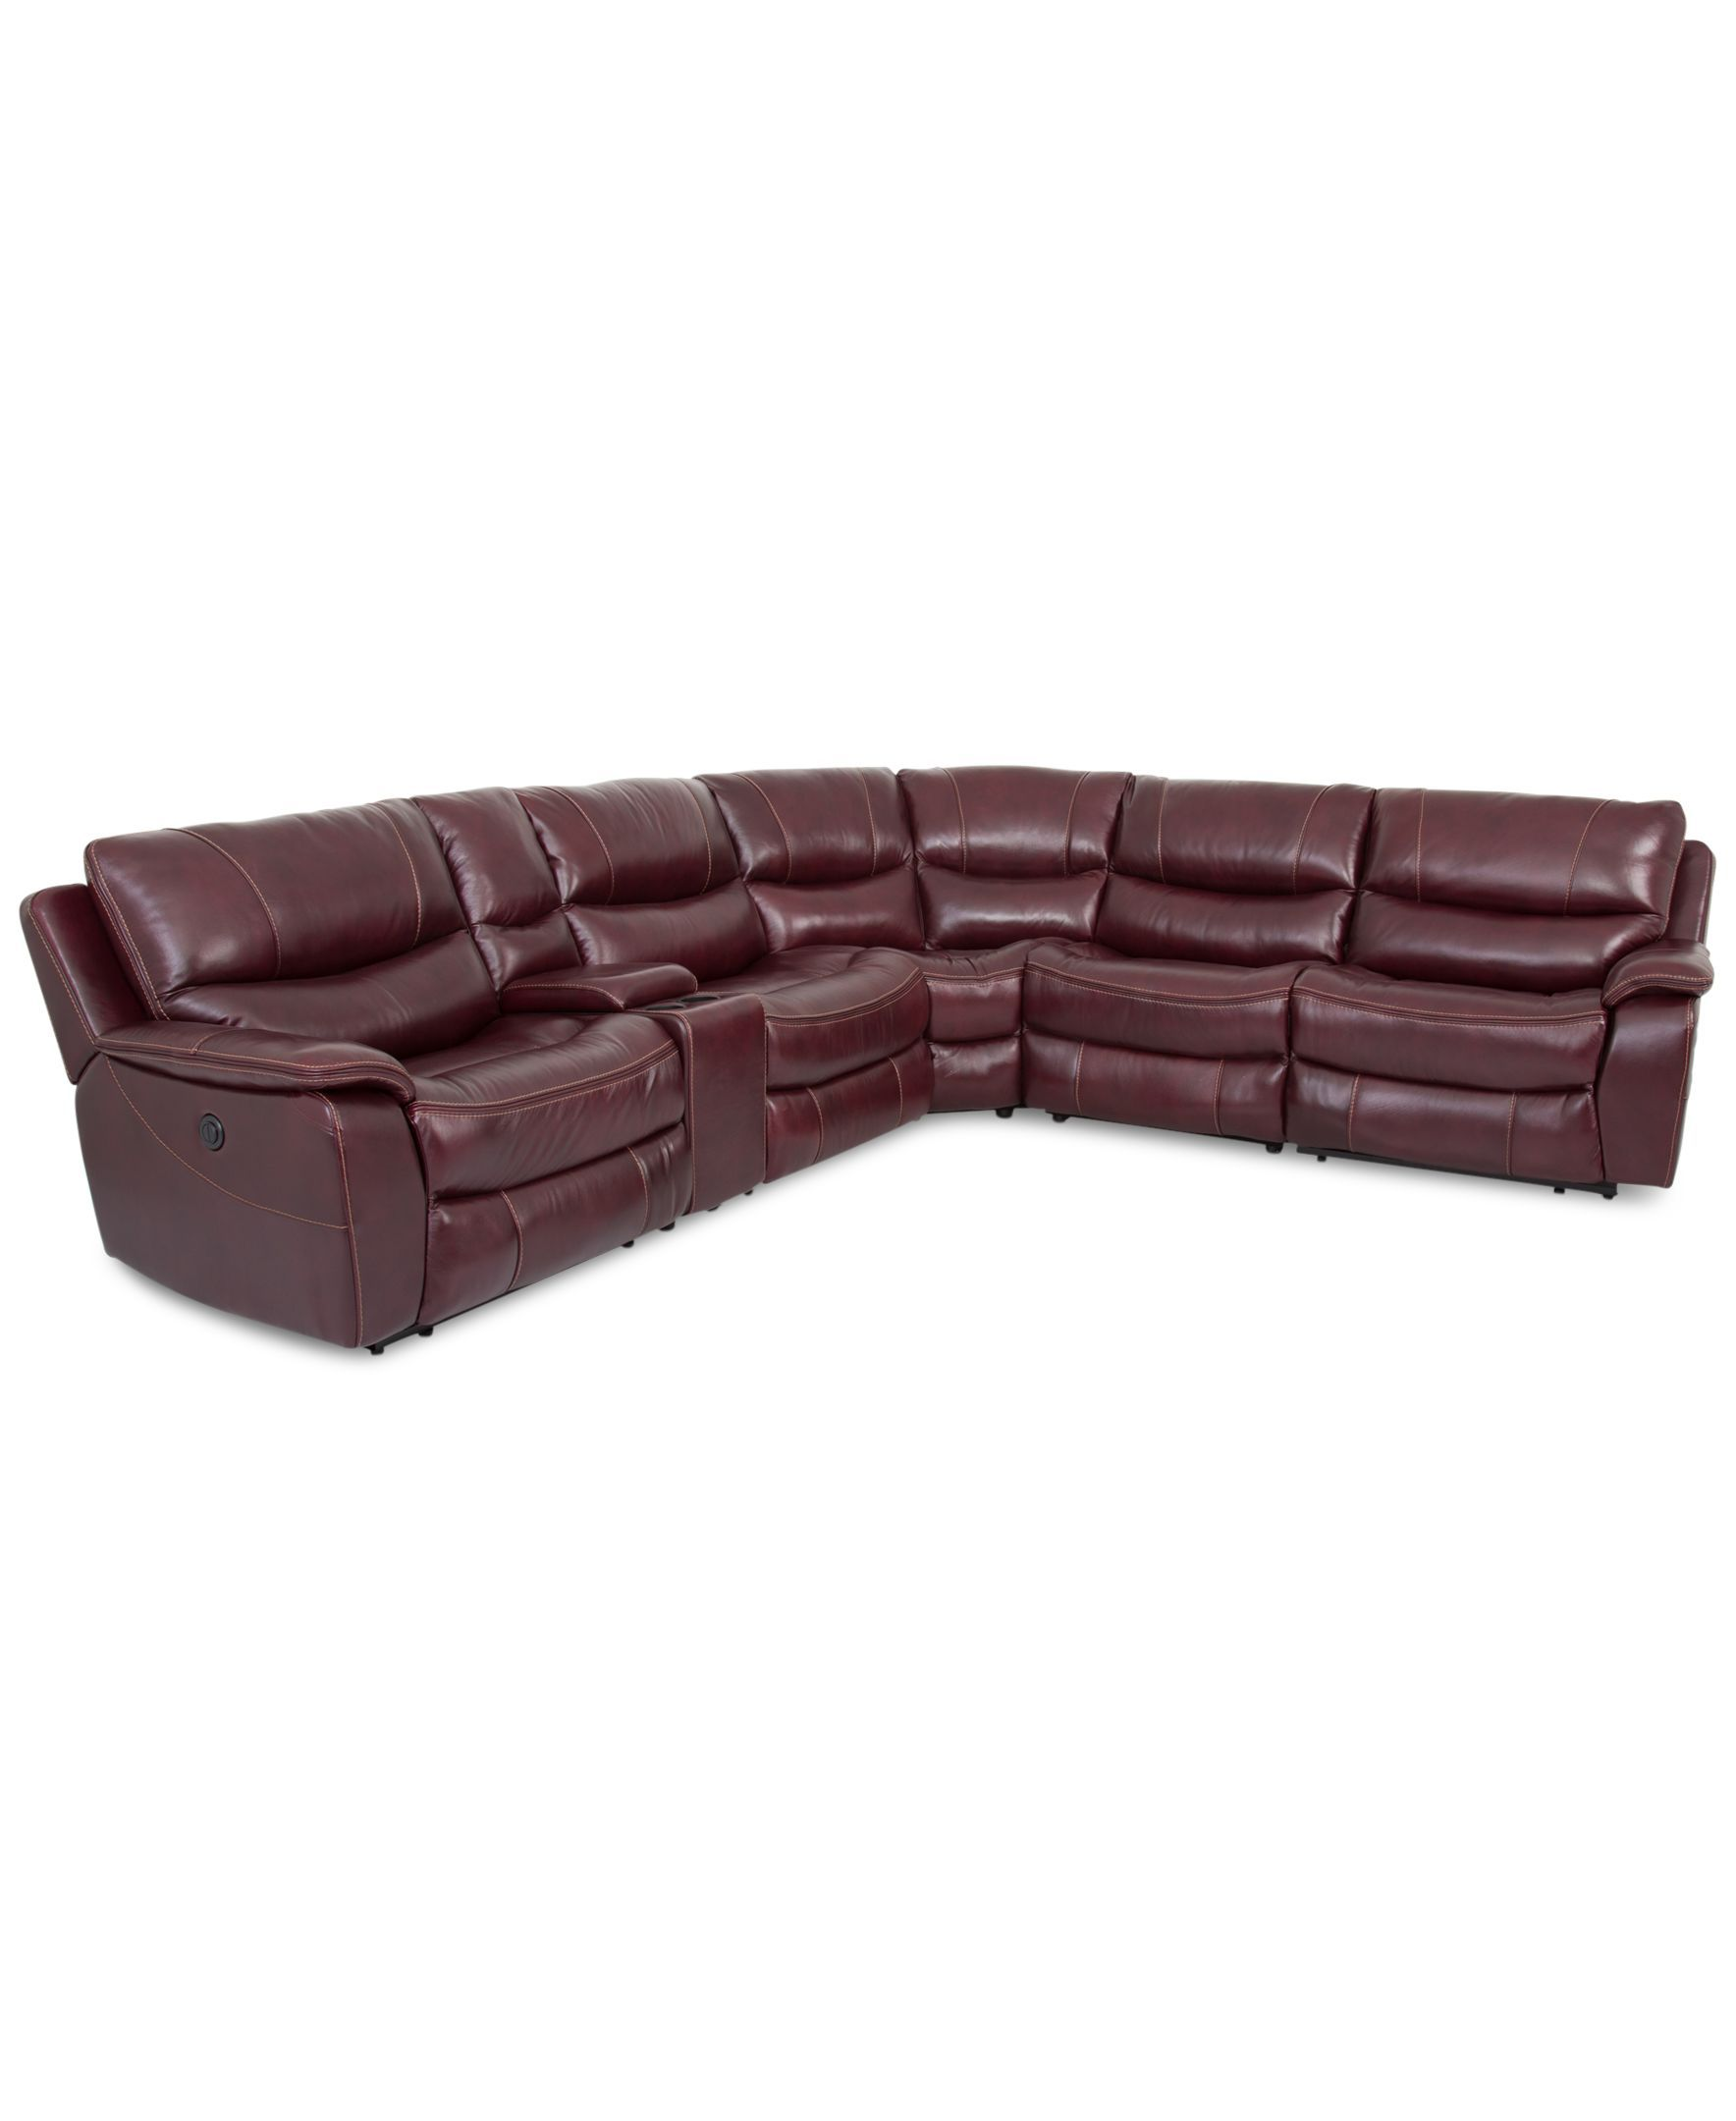 Daren Leather 6 pc Sectional Sofa with 2 Power Recliner Created